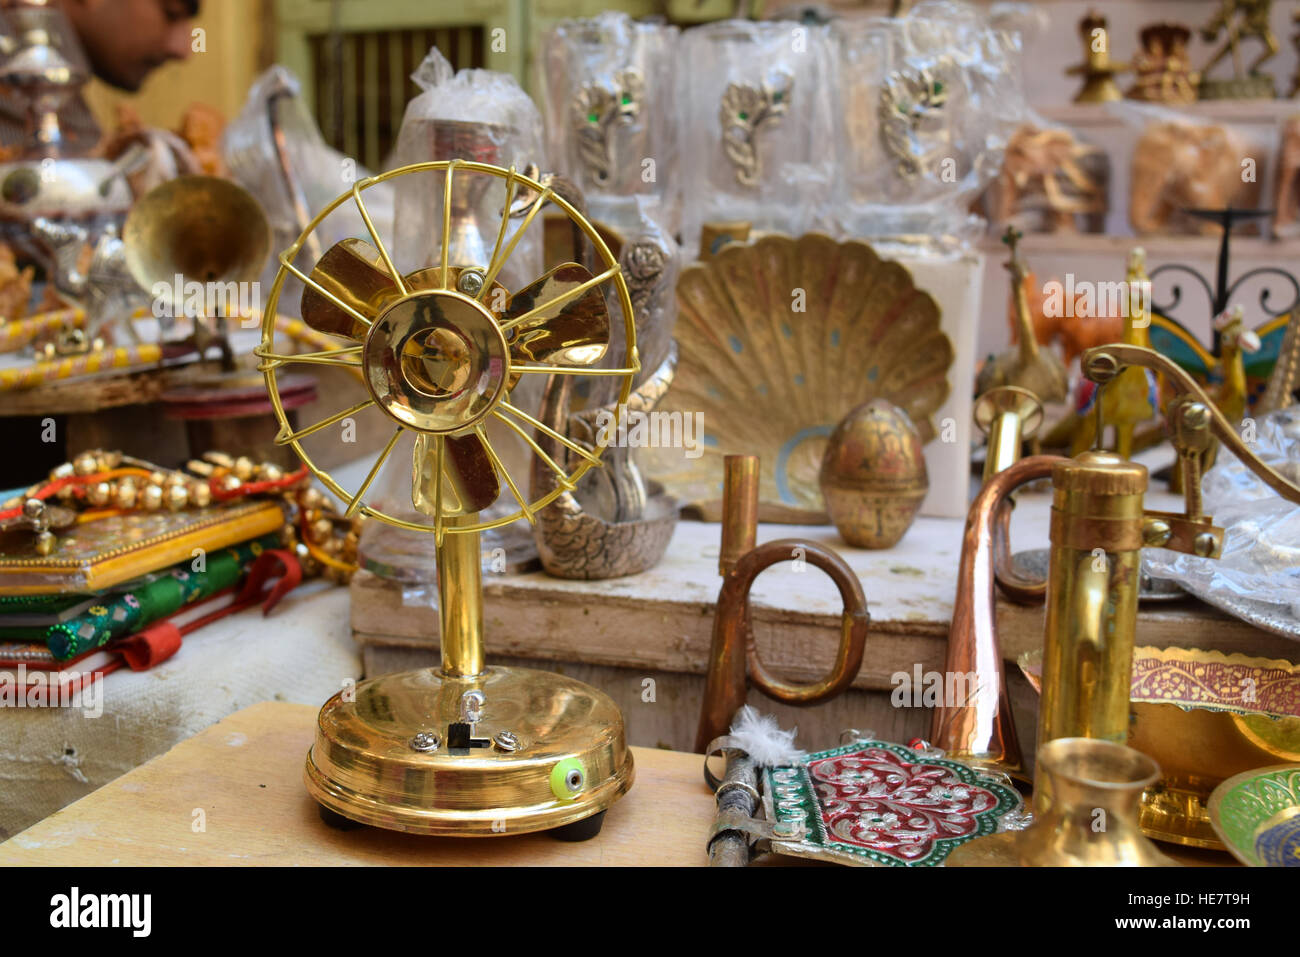 Vintage toy fan picture, Rajasthan, India - Stock Image